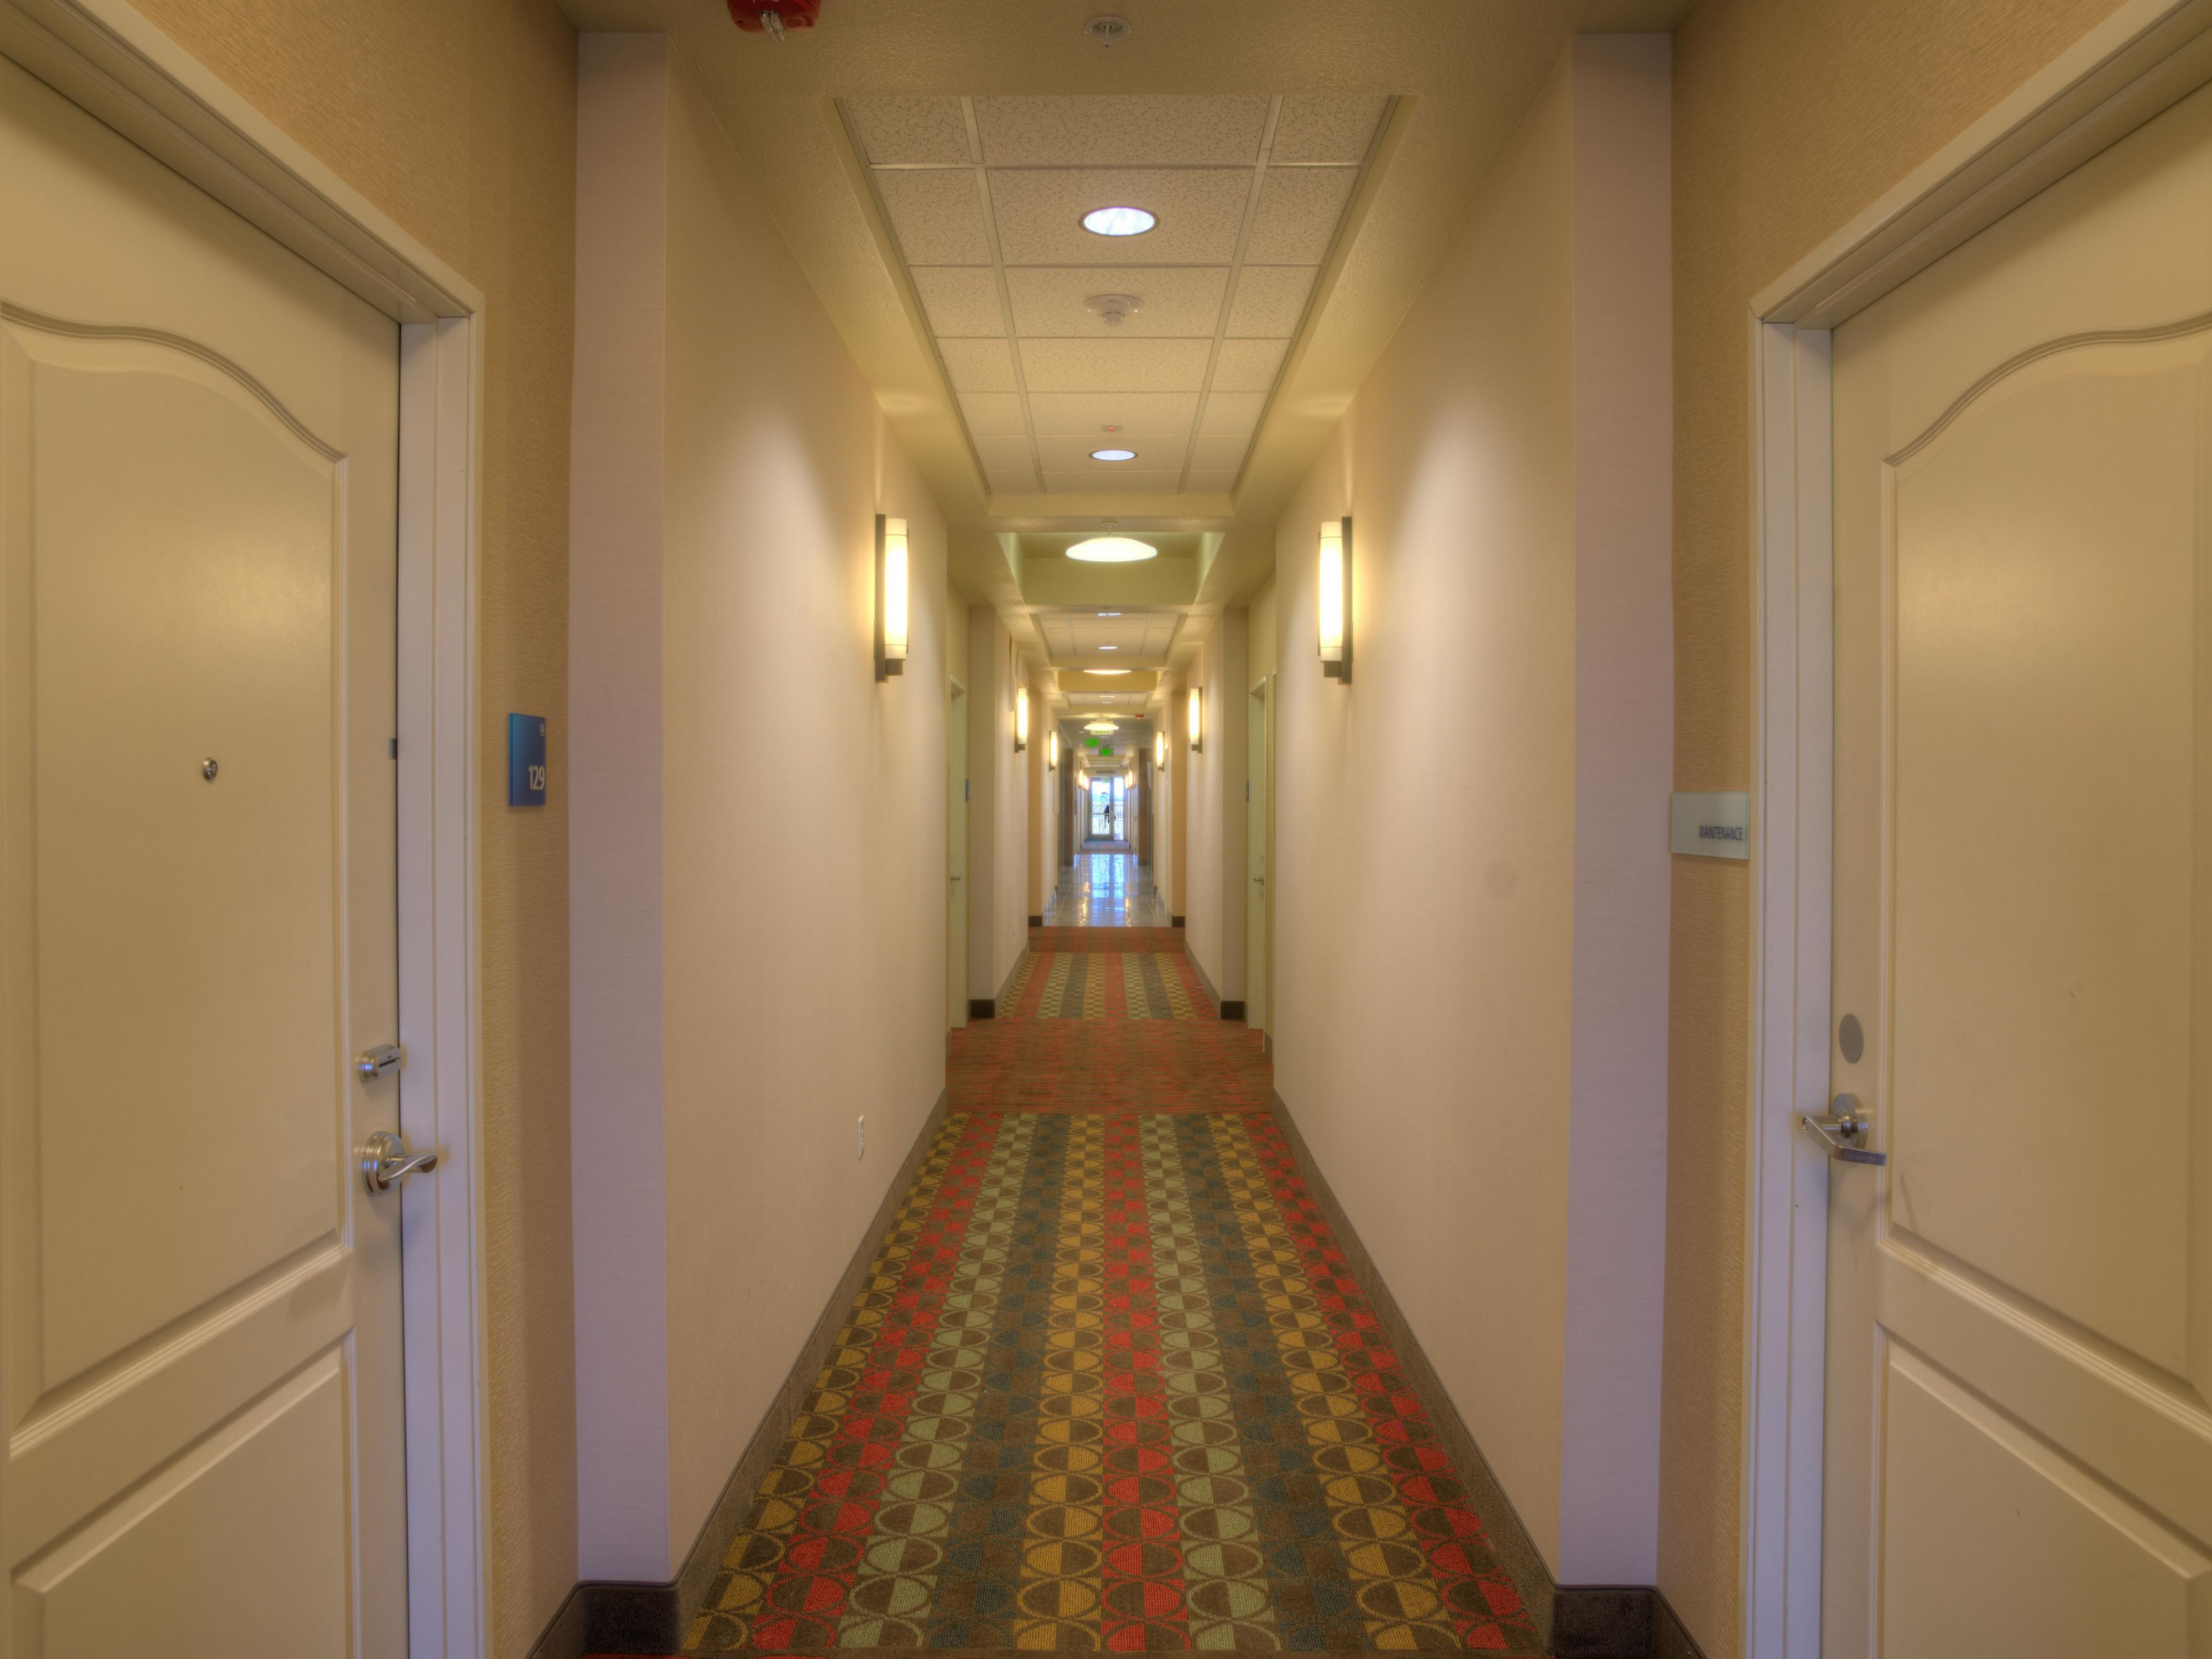 Our hotel offers interior corridor access to all our 104 rooms and